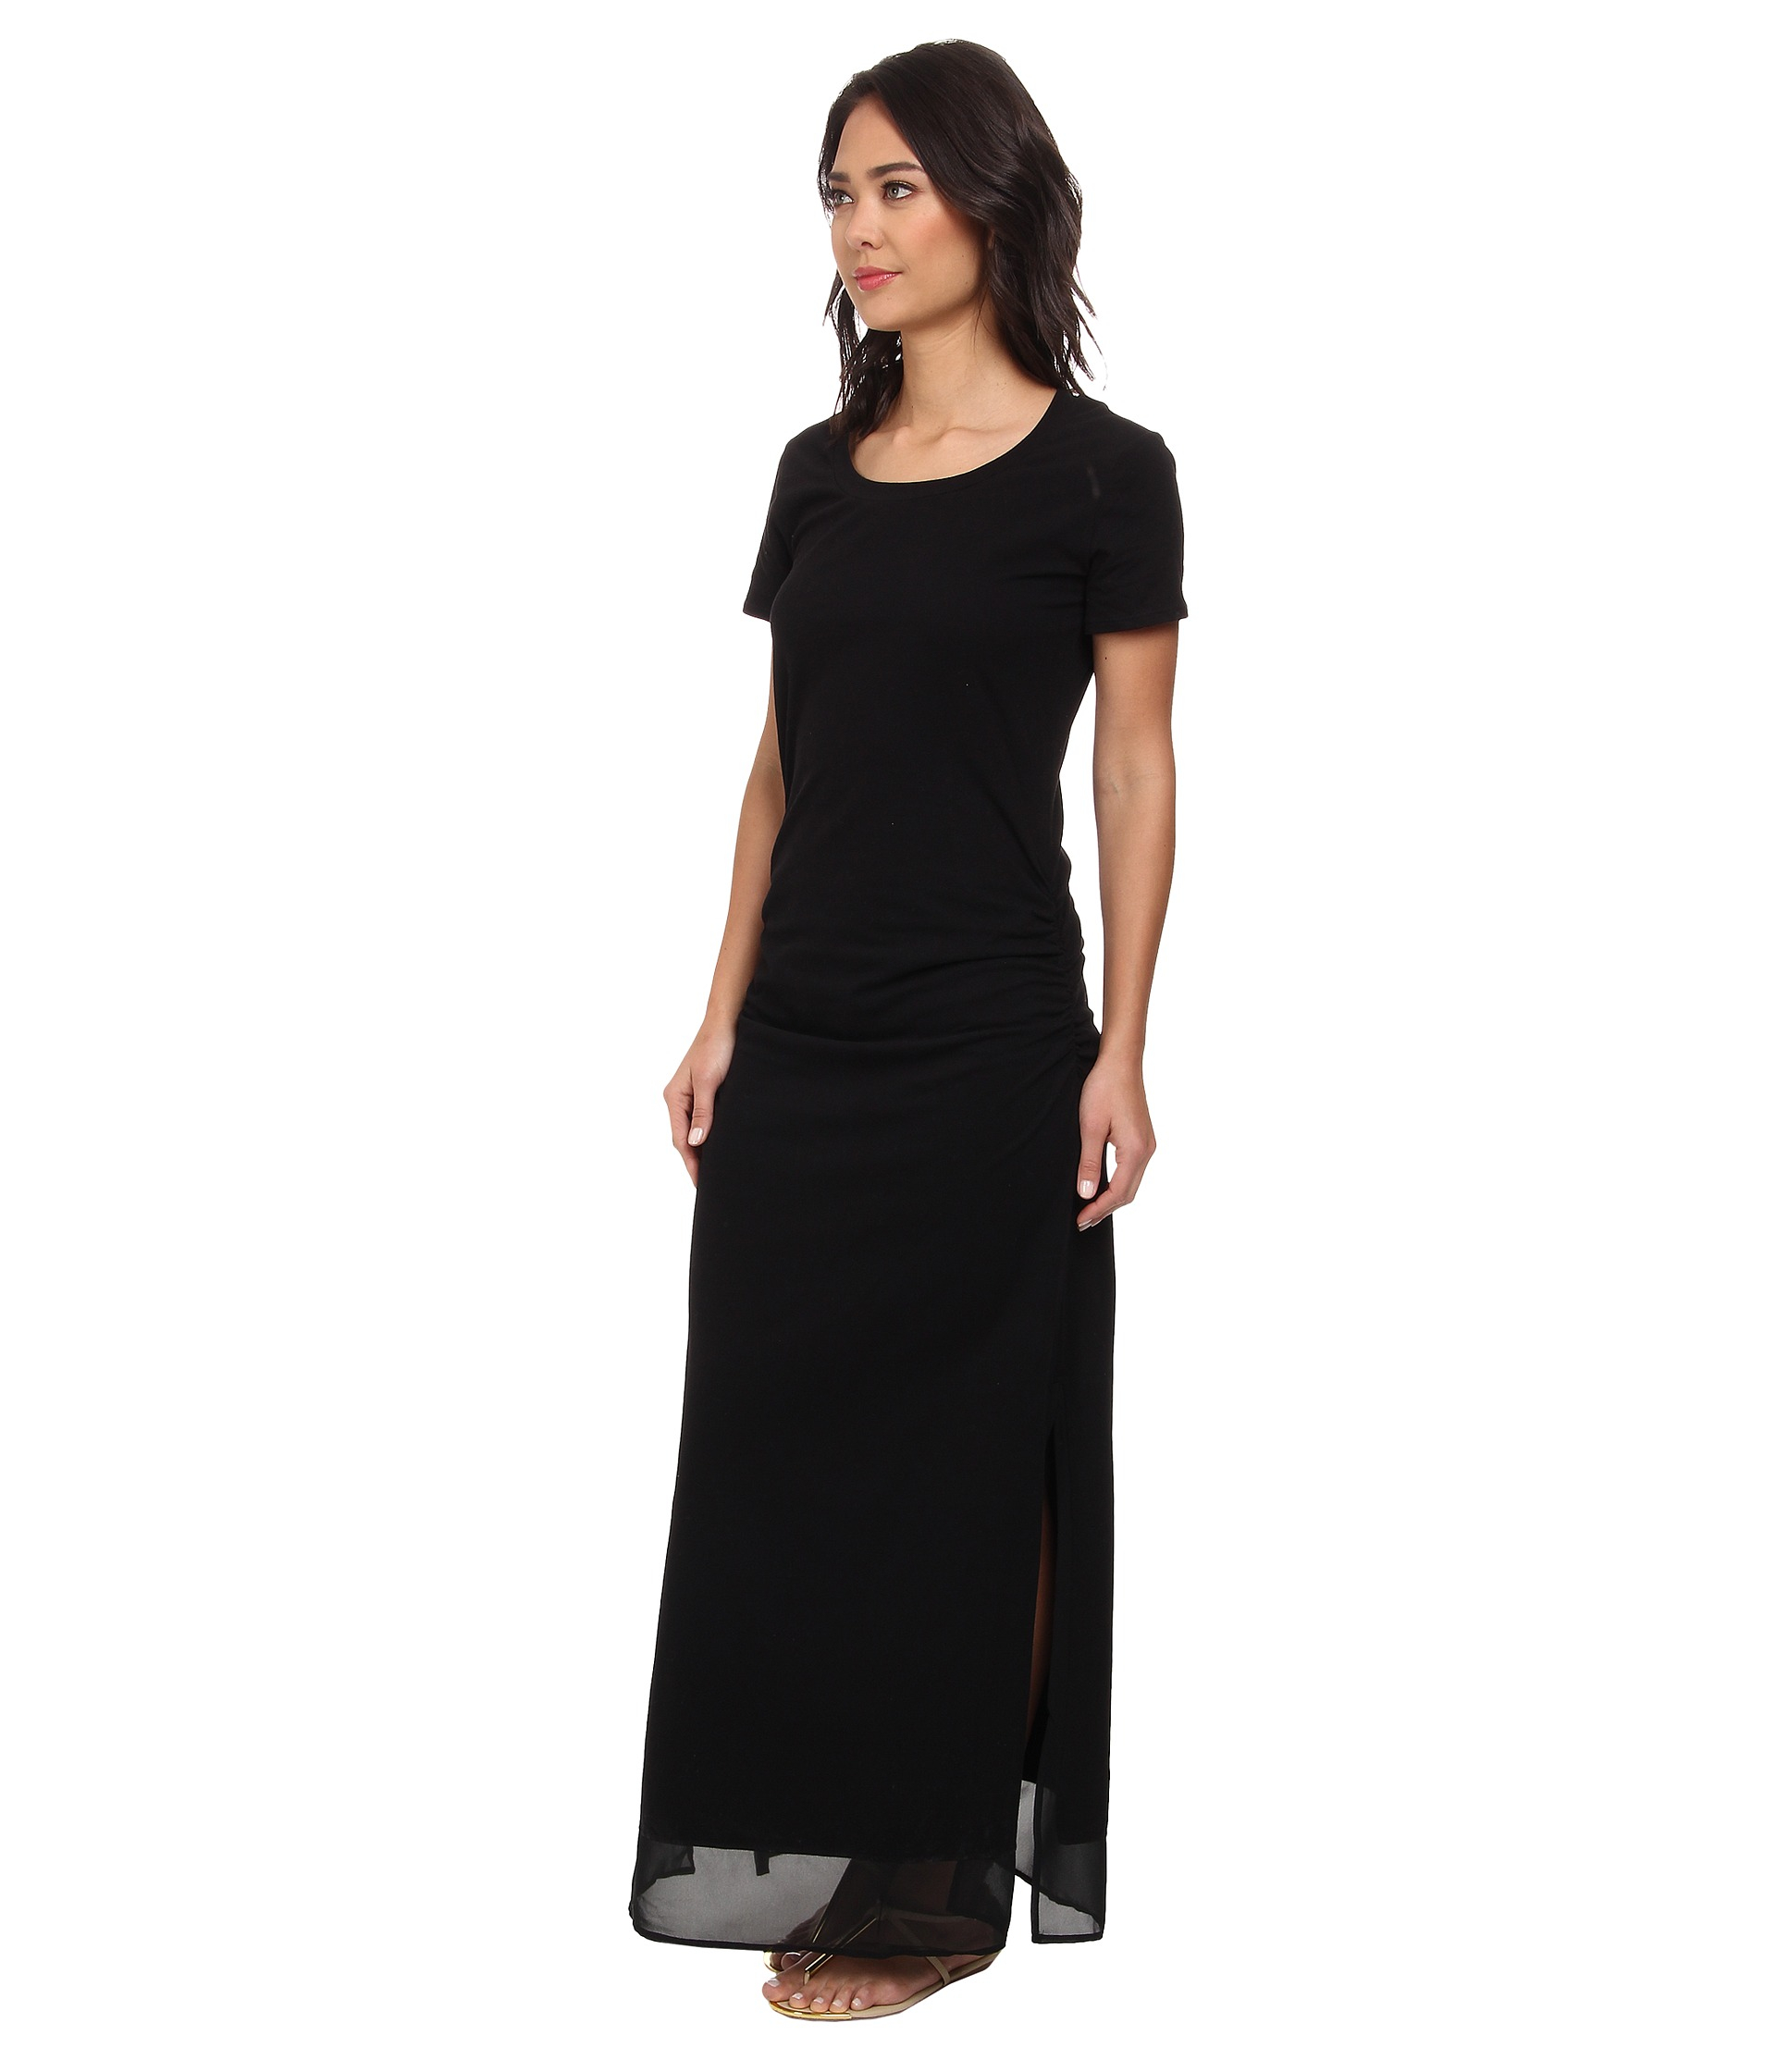 Tommy Bahama Black Dress